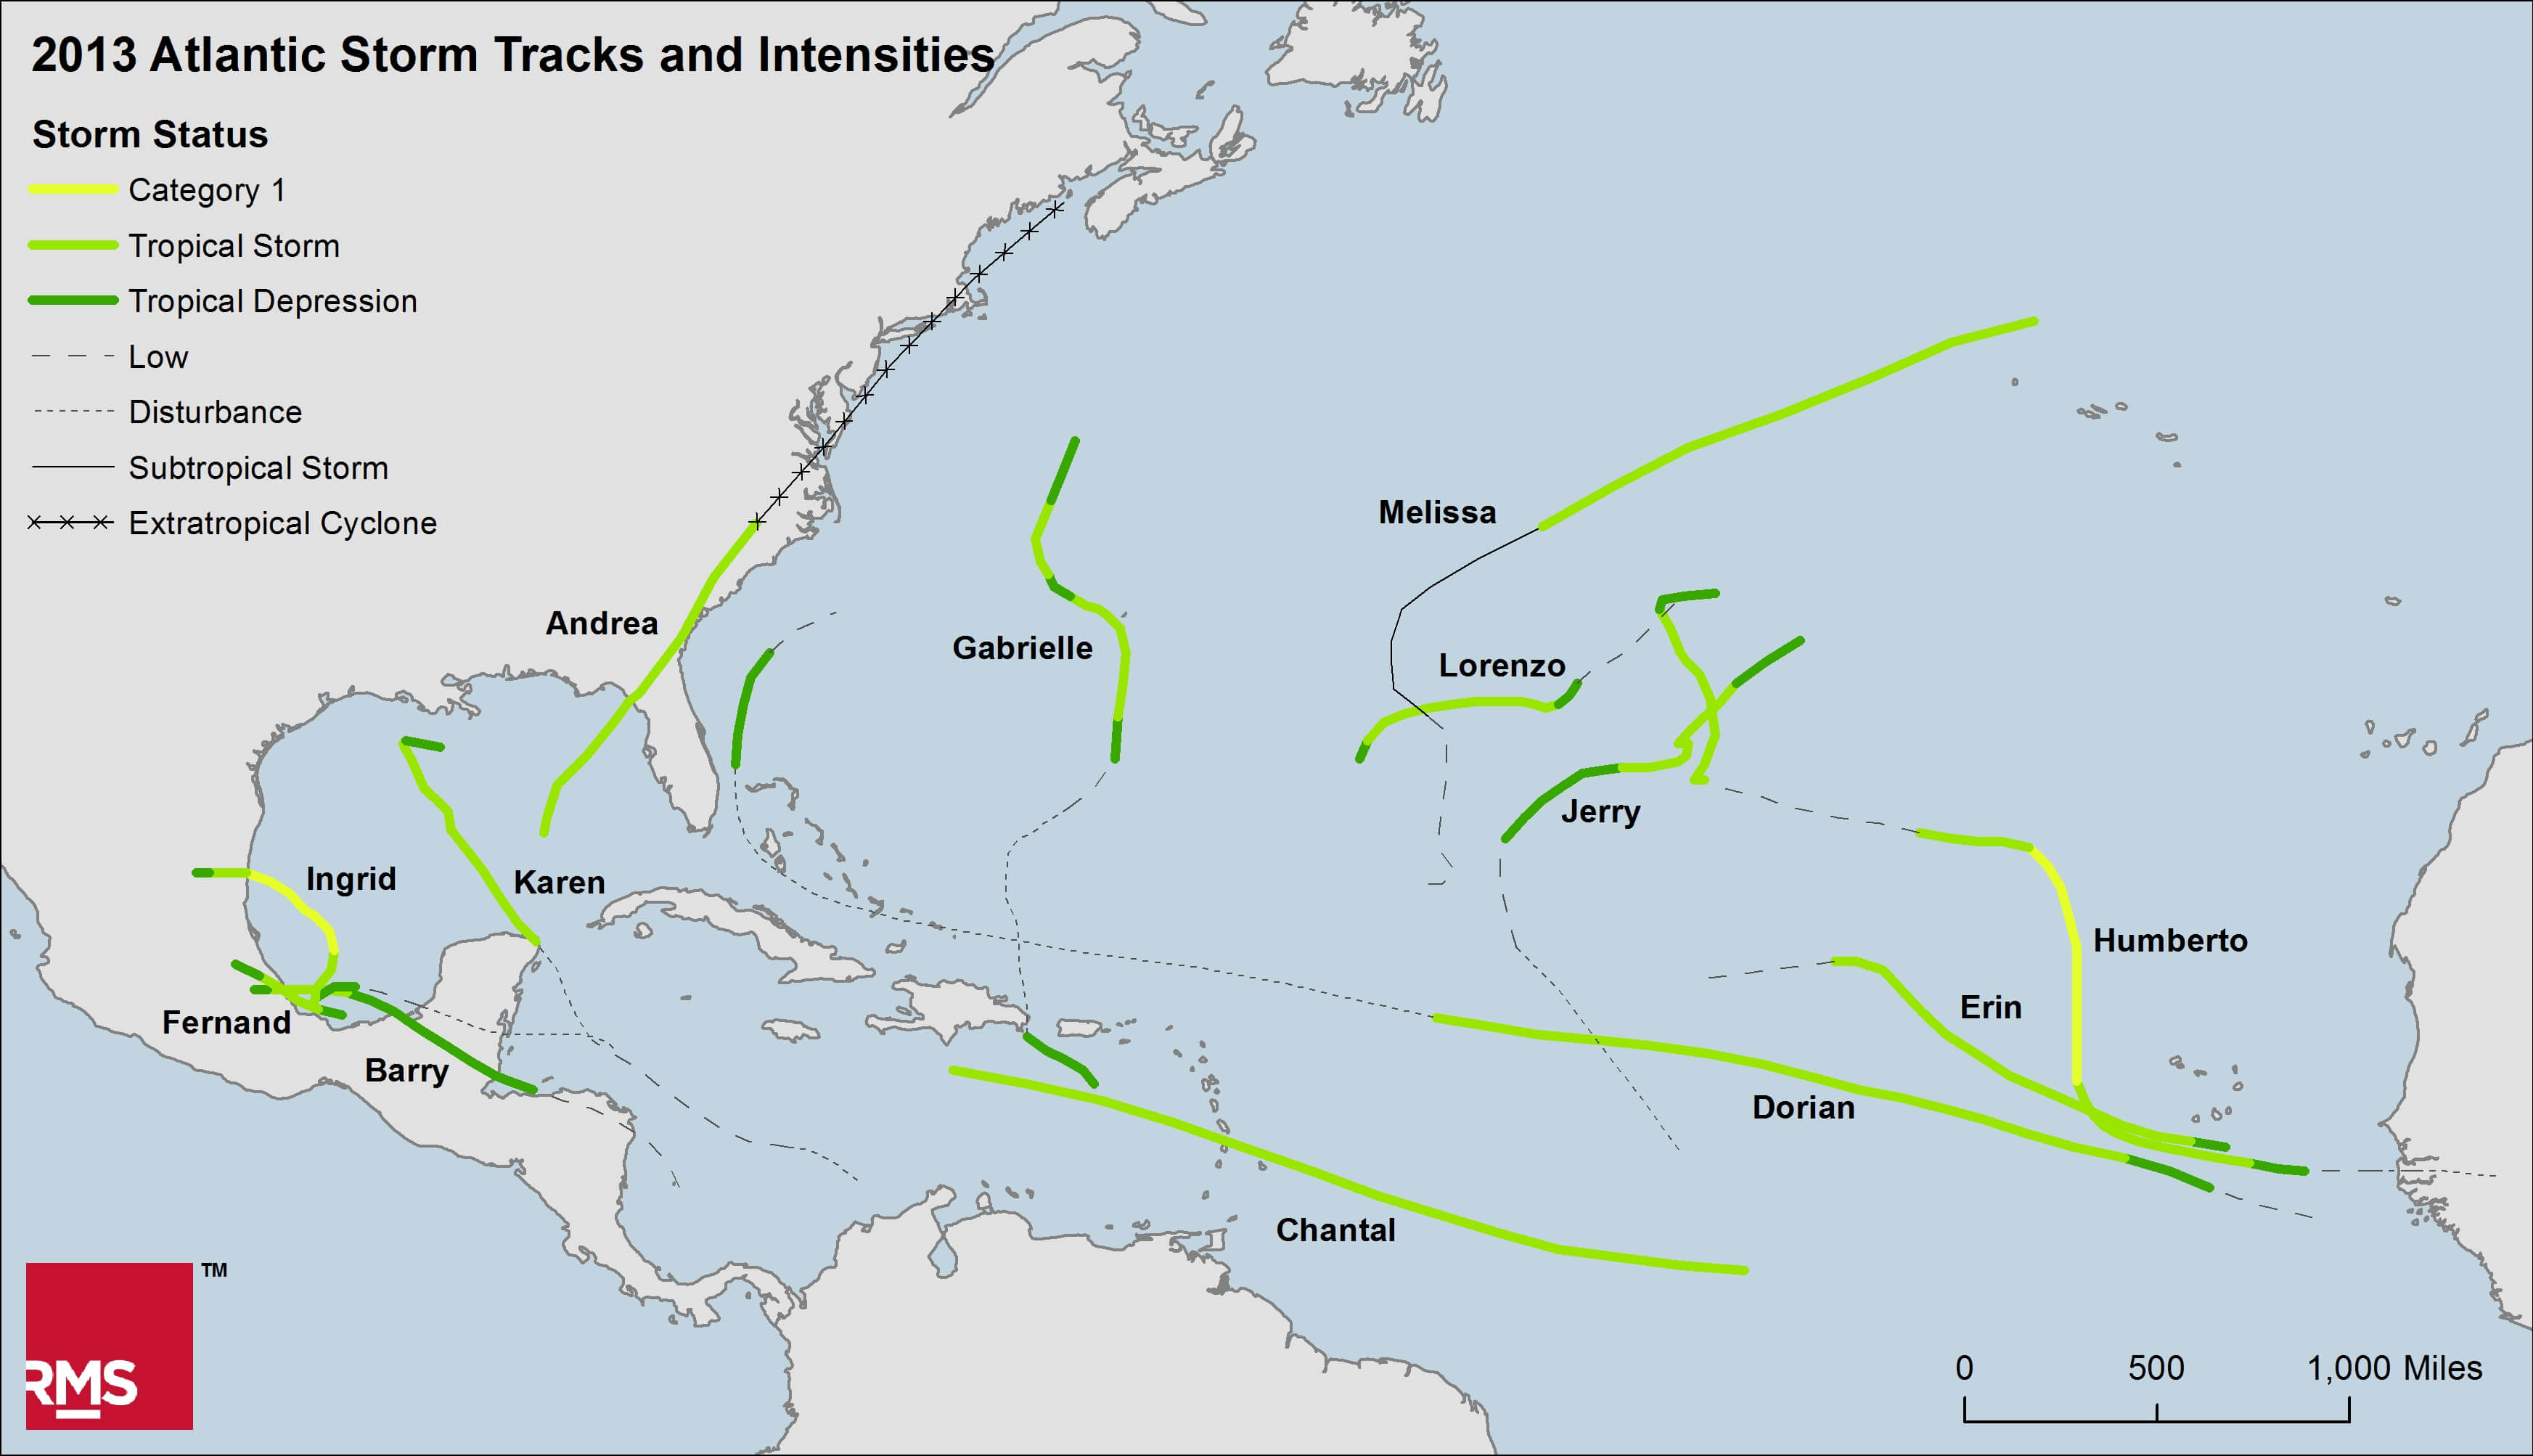 Atlantic Storm Tracks